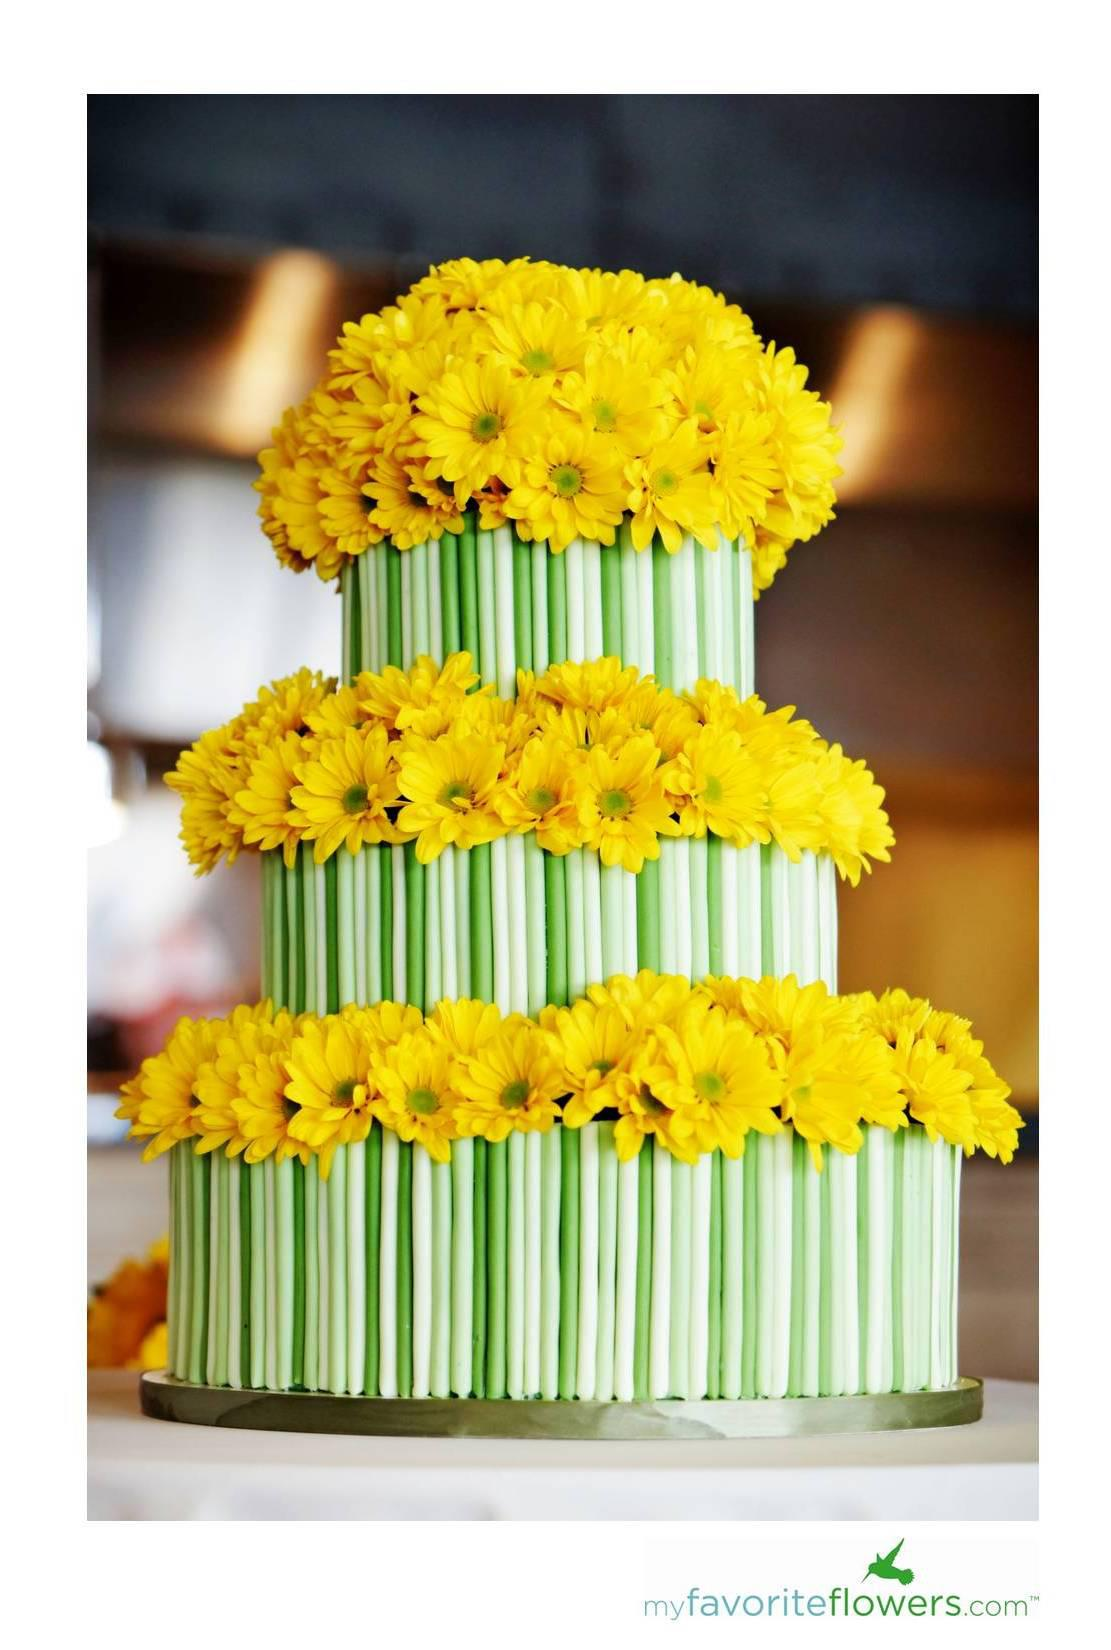 Visions Floral Art And Cake Design : Flower Advice: Tips on putting fresh flowers on the ...